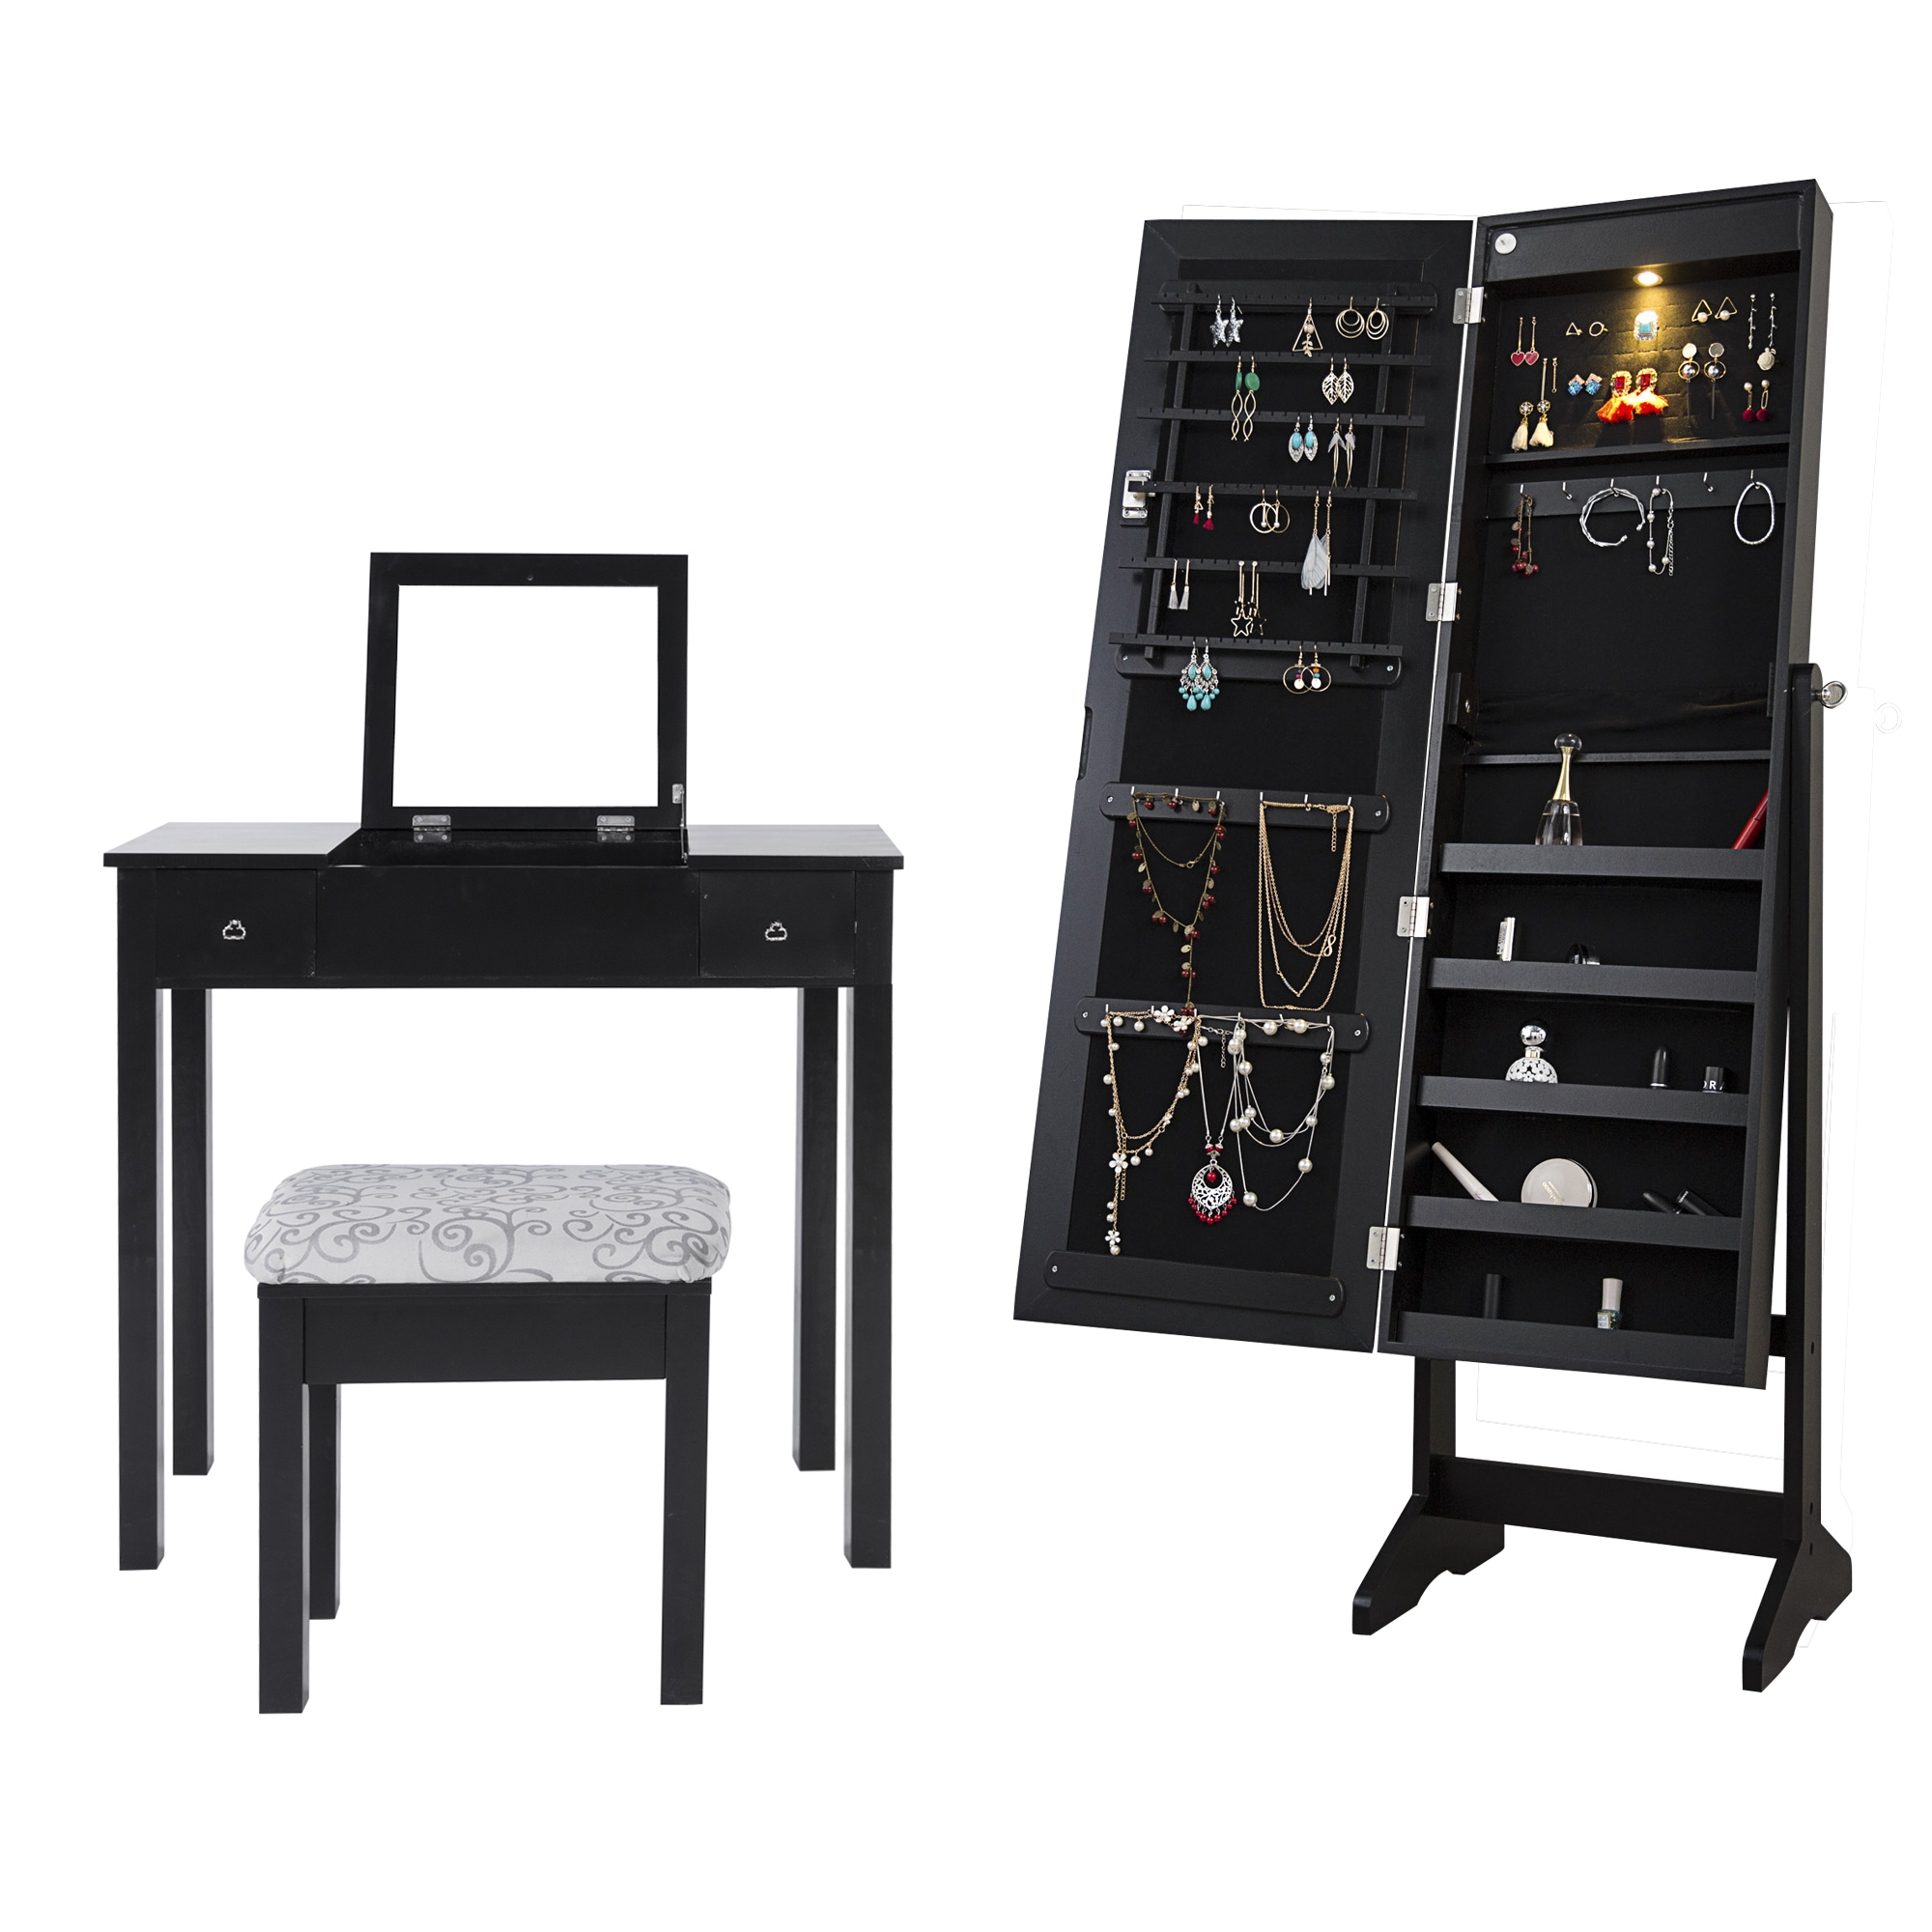 table l best the imgkidcom on pinterest kid ideas wwwimgkidcom vanity it has image ikea set